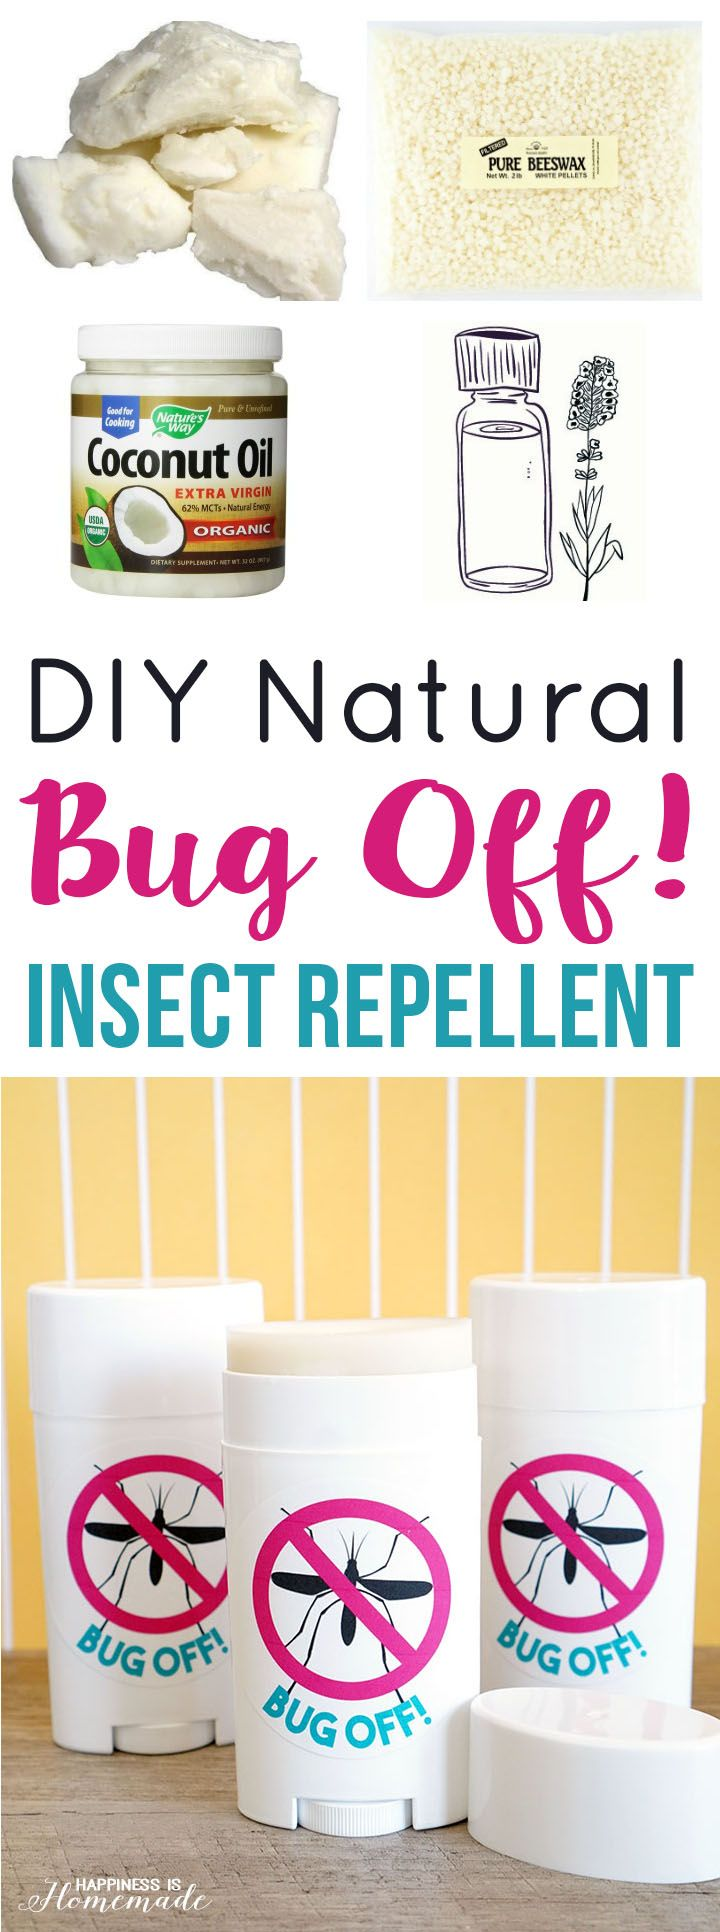 natural mosquito repellent Find great deals on ebay for natural mosquito repellent in insect nets & repellents shop with confidence.